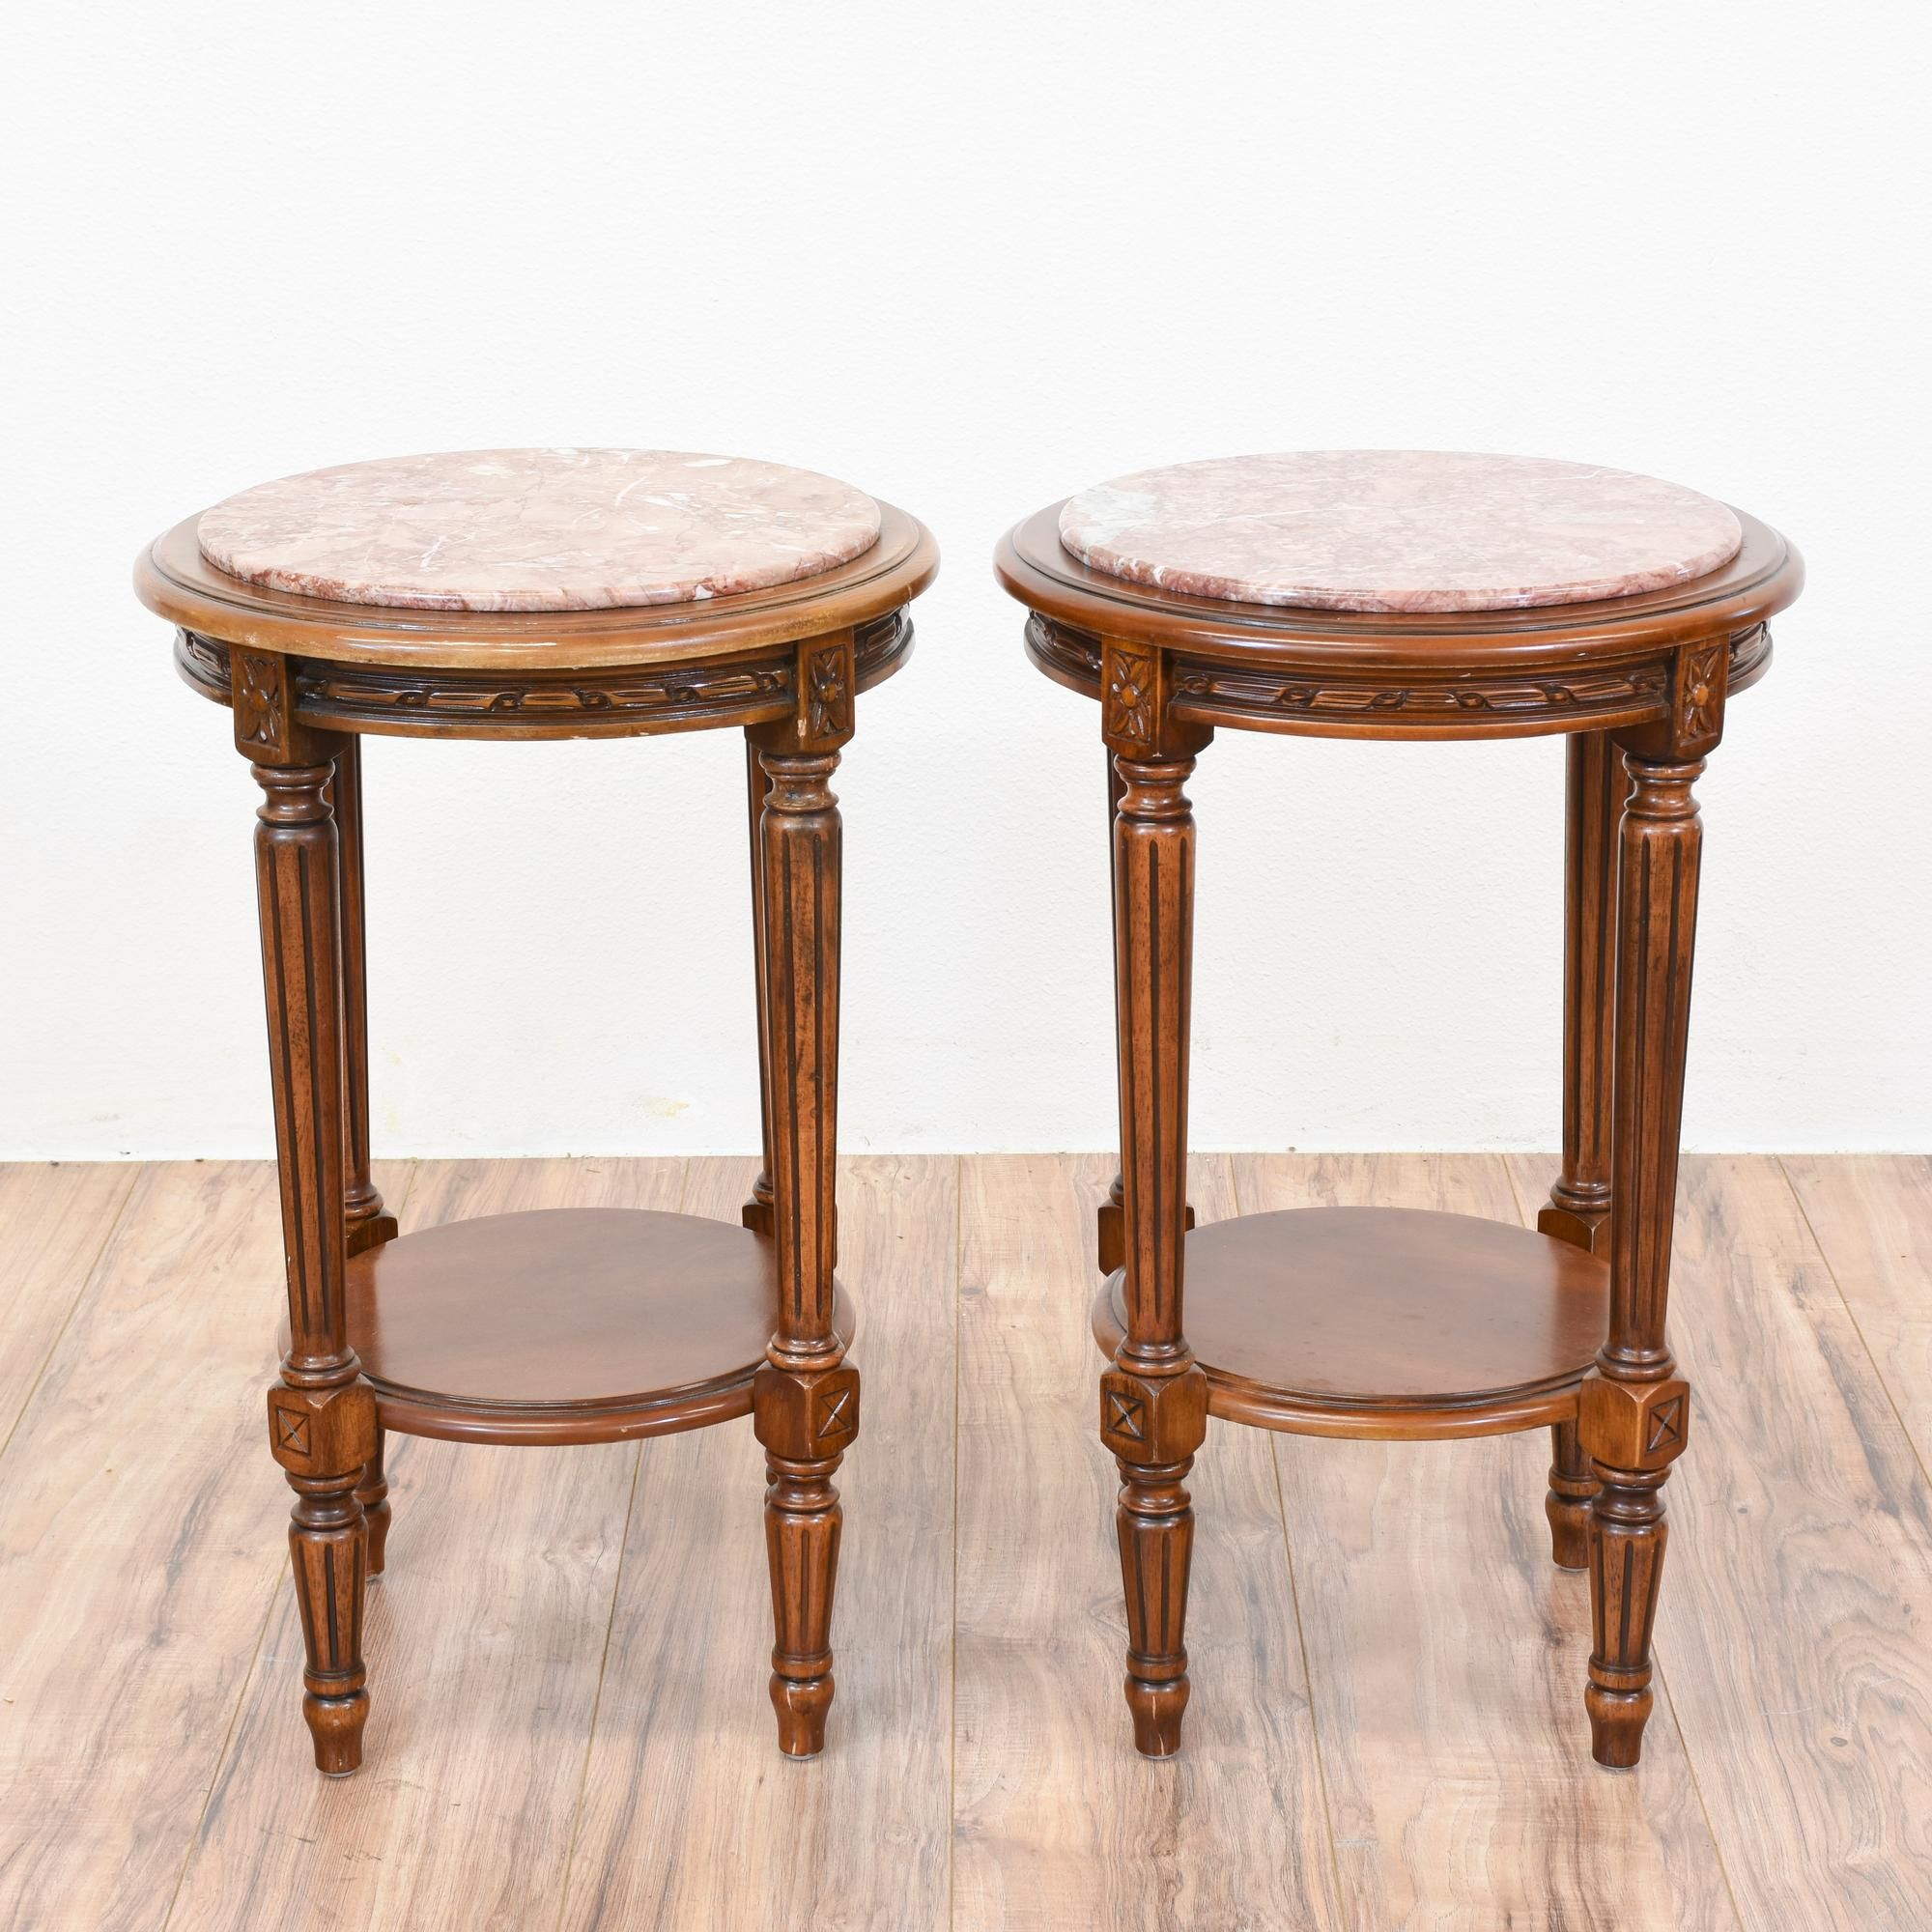 This pair of 2 tiered end tables are featured in a solid wood with